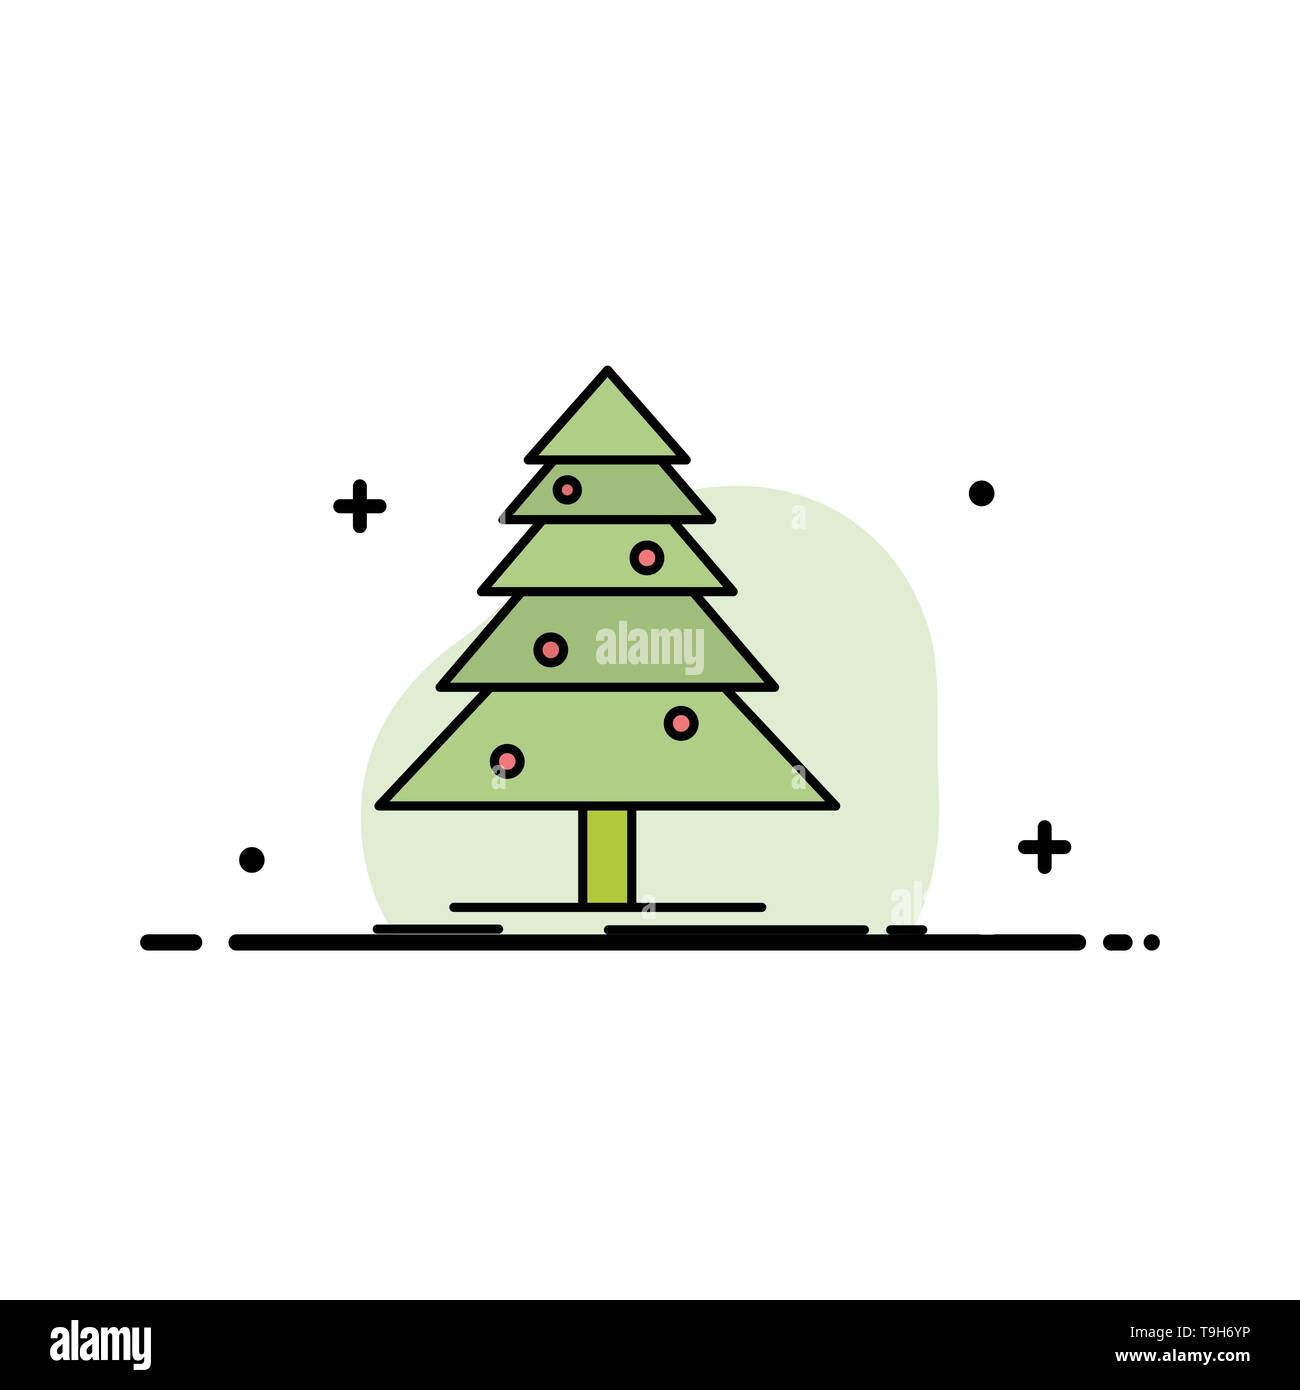 Tree, Forest, Christmas, XMas  Business Flat Line Filled Icon Vector Banner Template - Stock Image